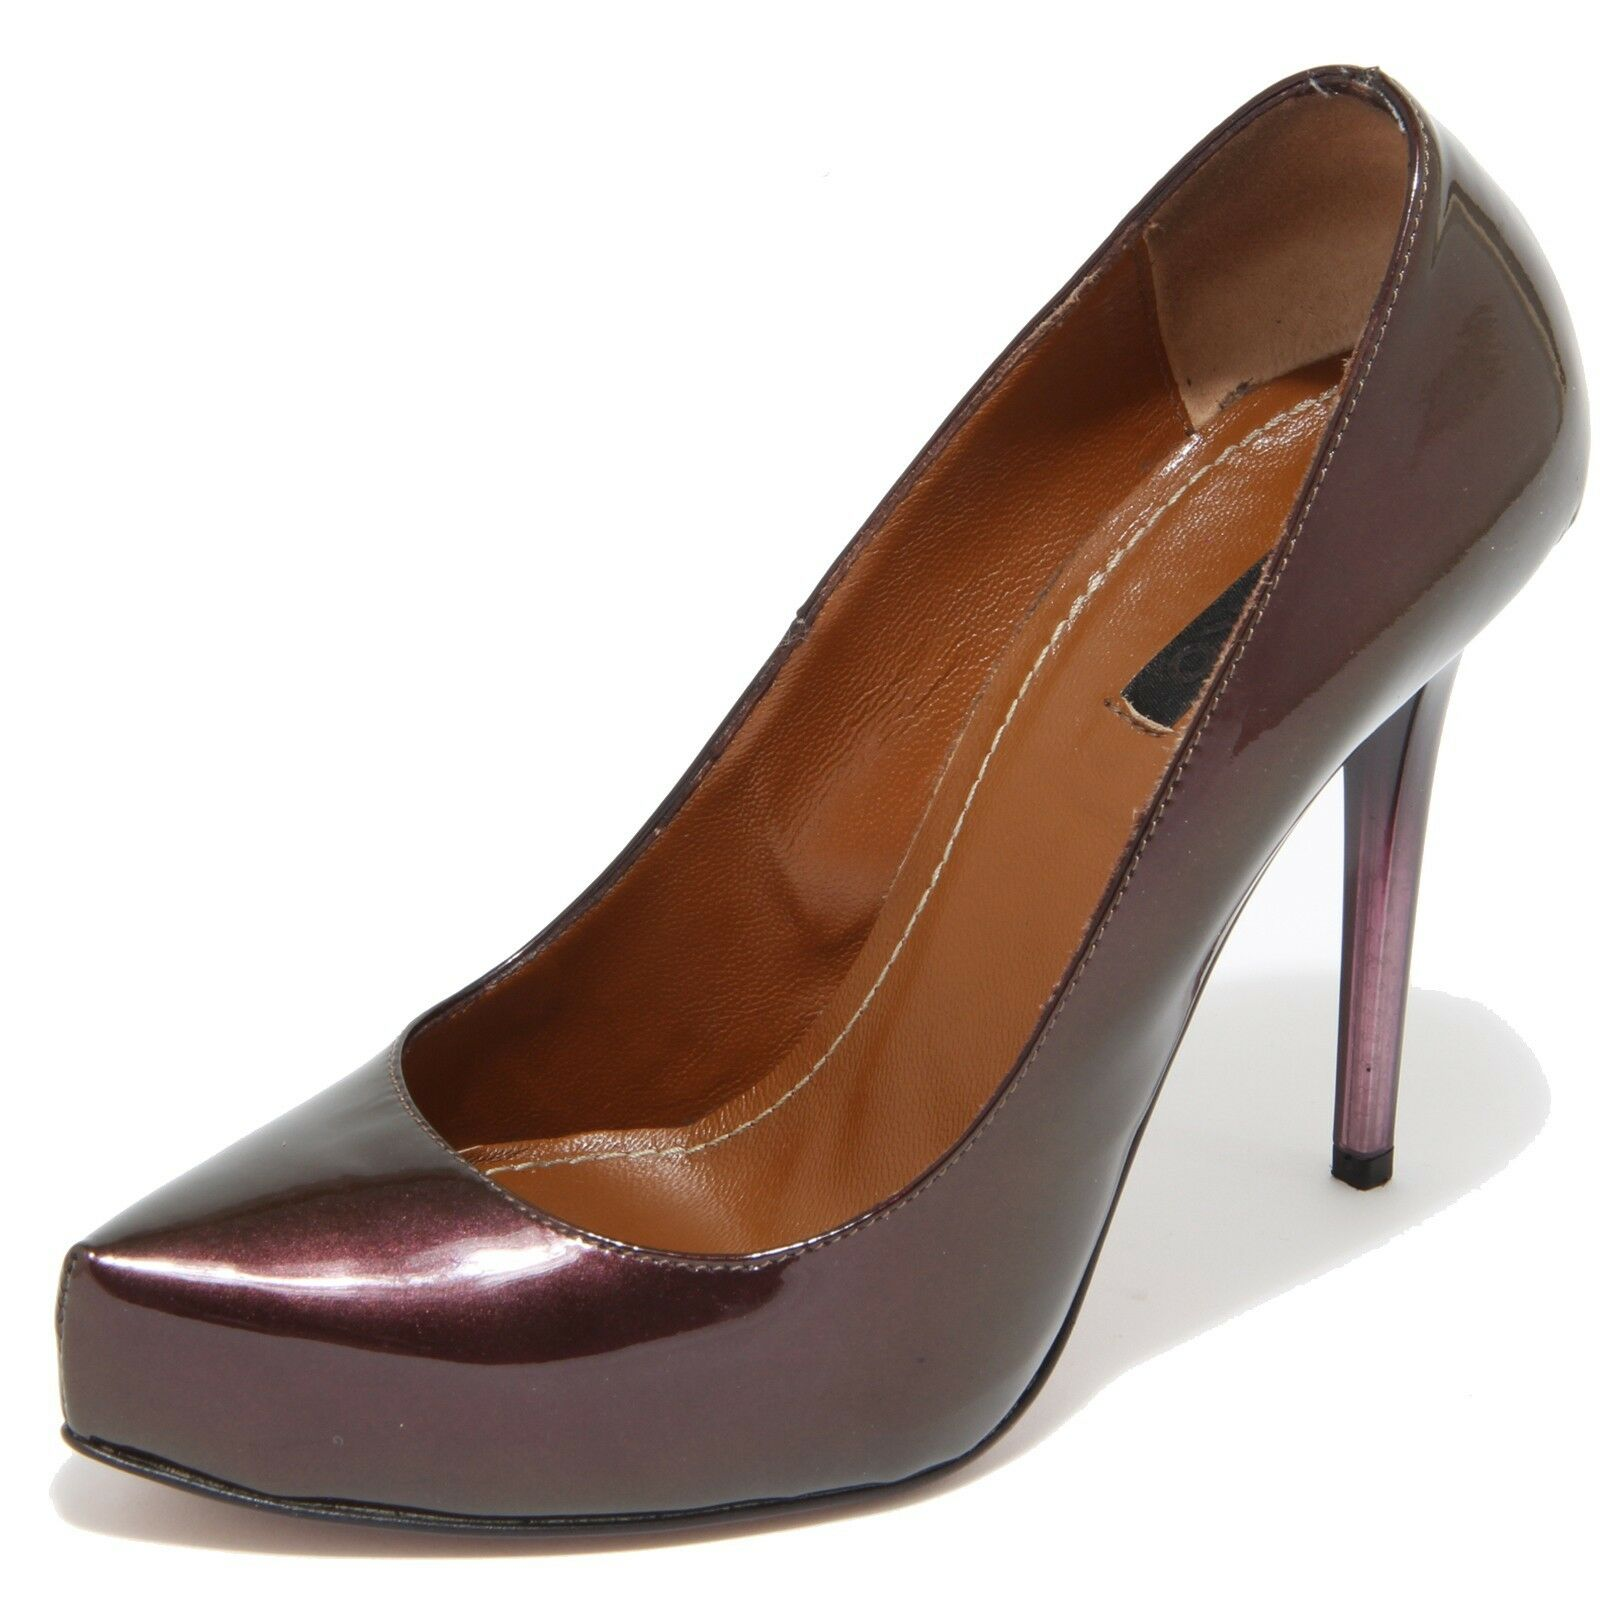 80099 decollete donna shoes bordeaux PINKO montepulciano scarpe shoes donna Donna 42358d